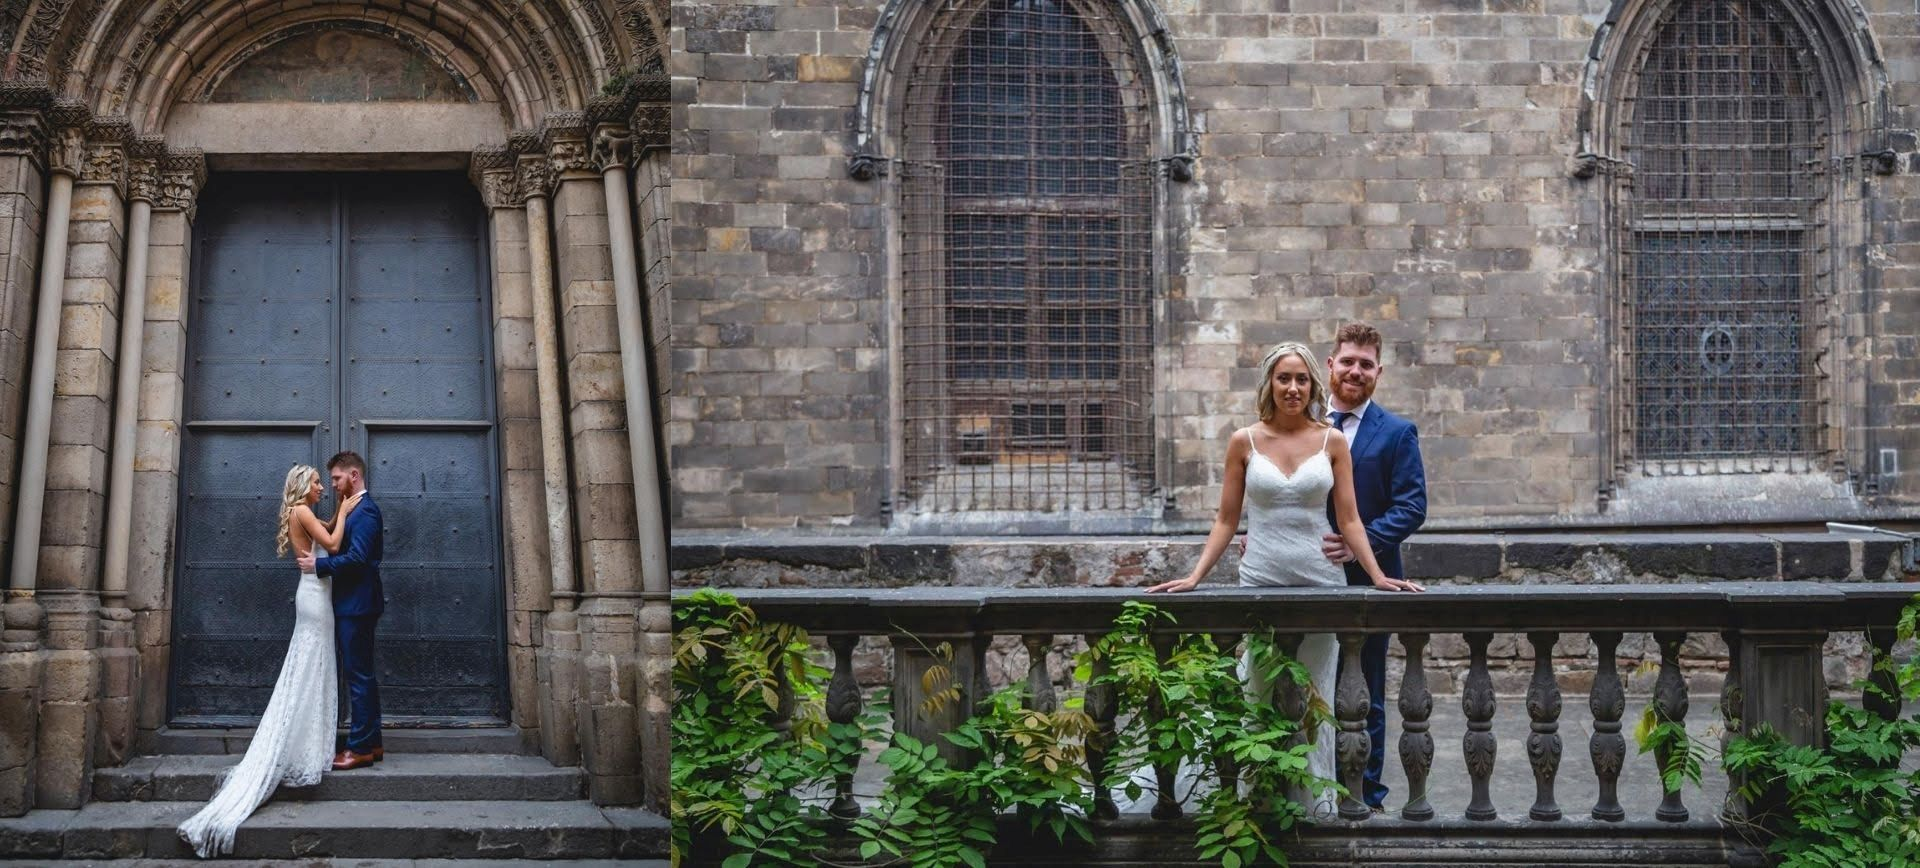 barcelona intimate wedding package - labyirnth park & gothic quarter